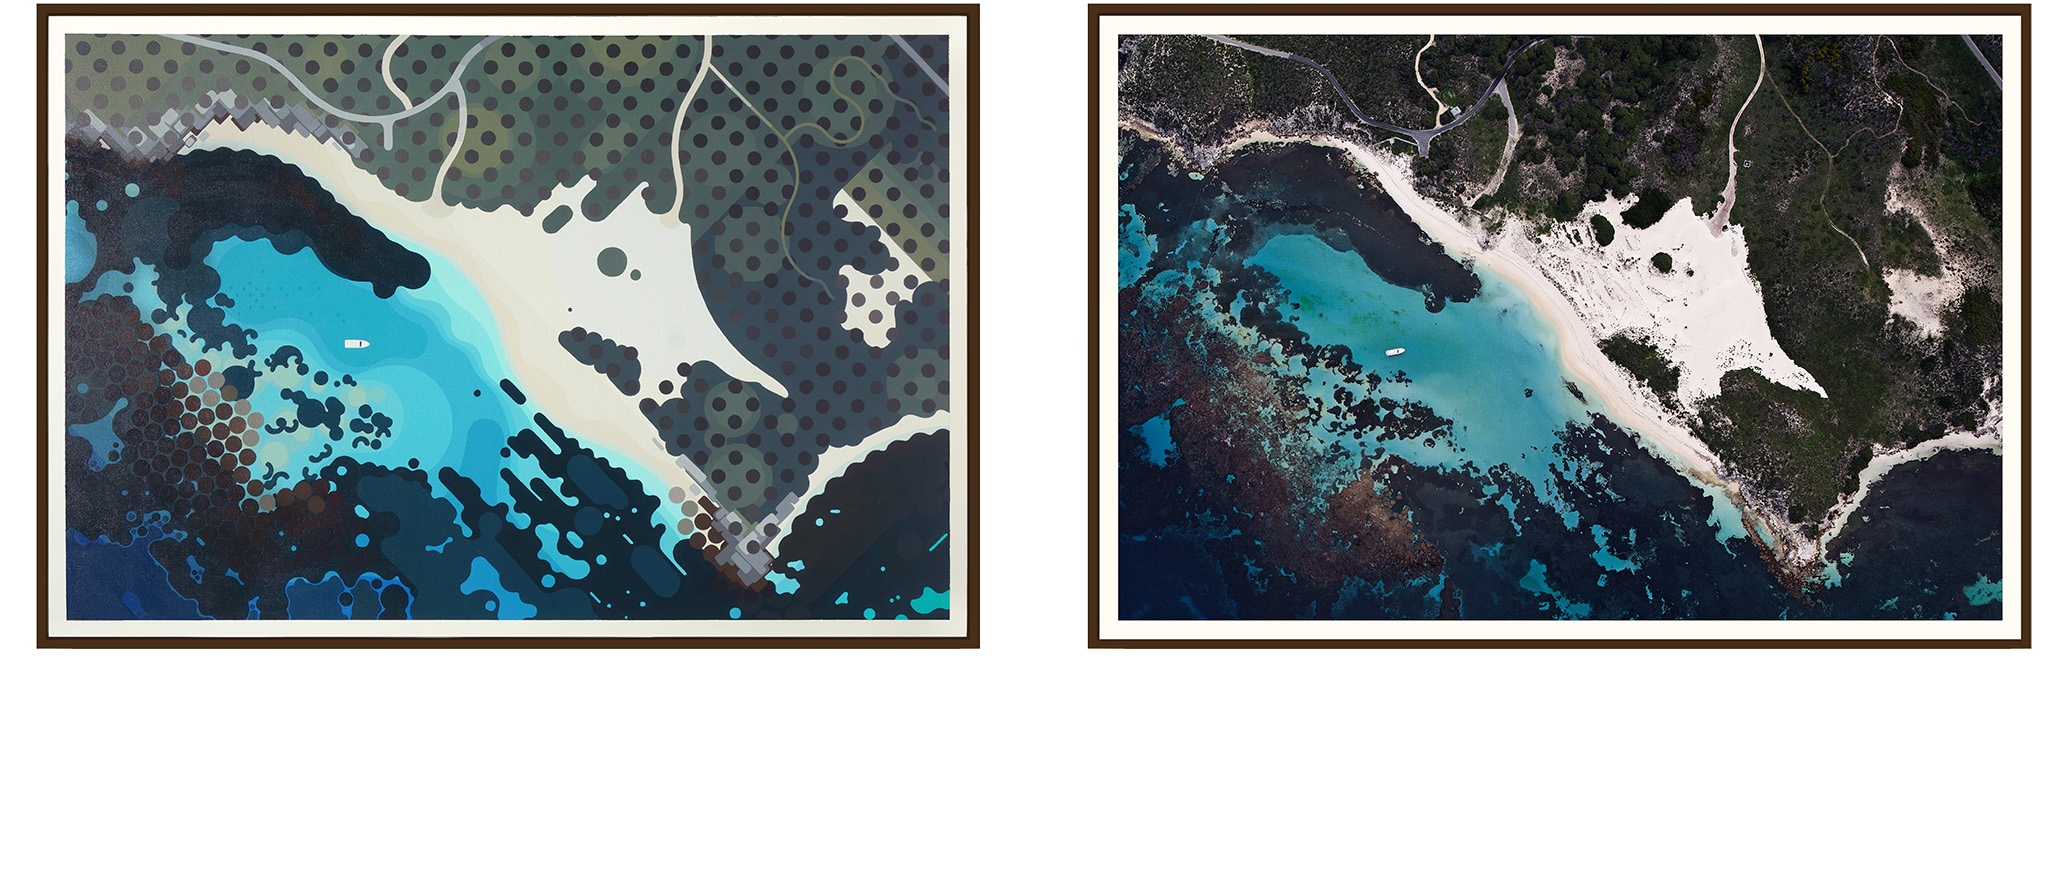 Left: 'Porpoise Bay' by Amok Island - acrylics on canvas 154cm x 104cm Right: 'Porpoise Ba' by Jarrad Seng - giclee photographic print on canvas 154cm x 104cm